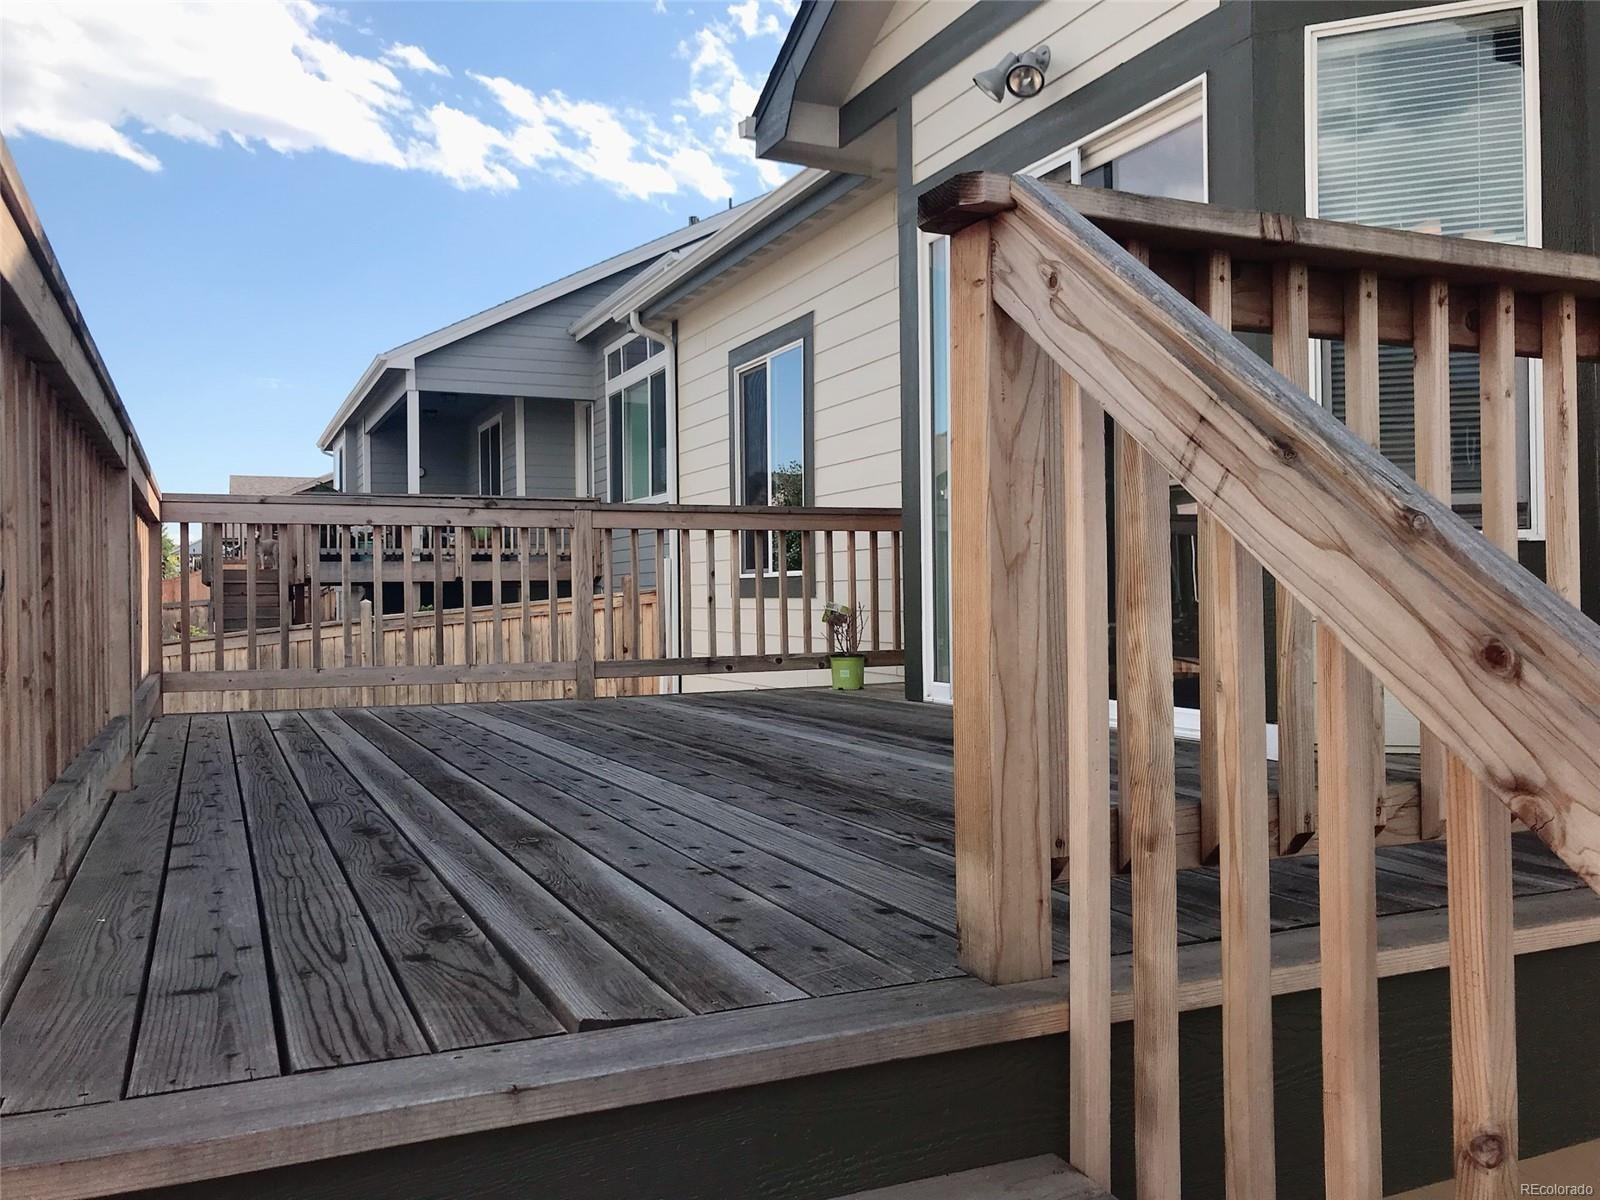 MLS# 1884000 - 24 - 2216 73rd Avenue Place, Greeley, CO 80634